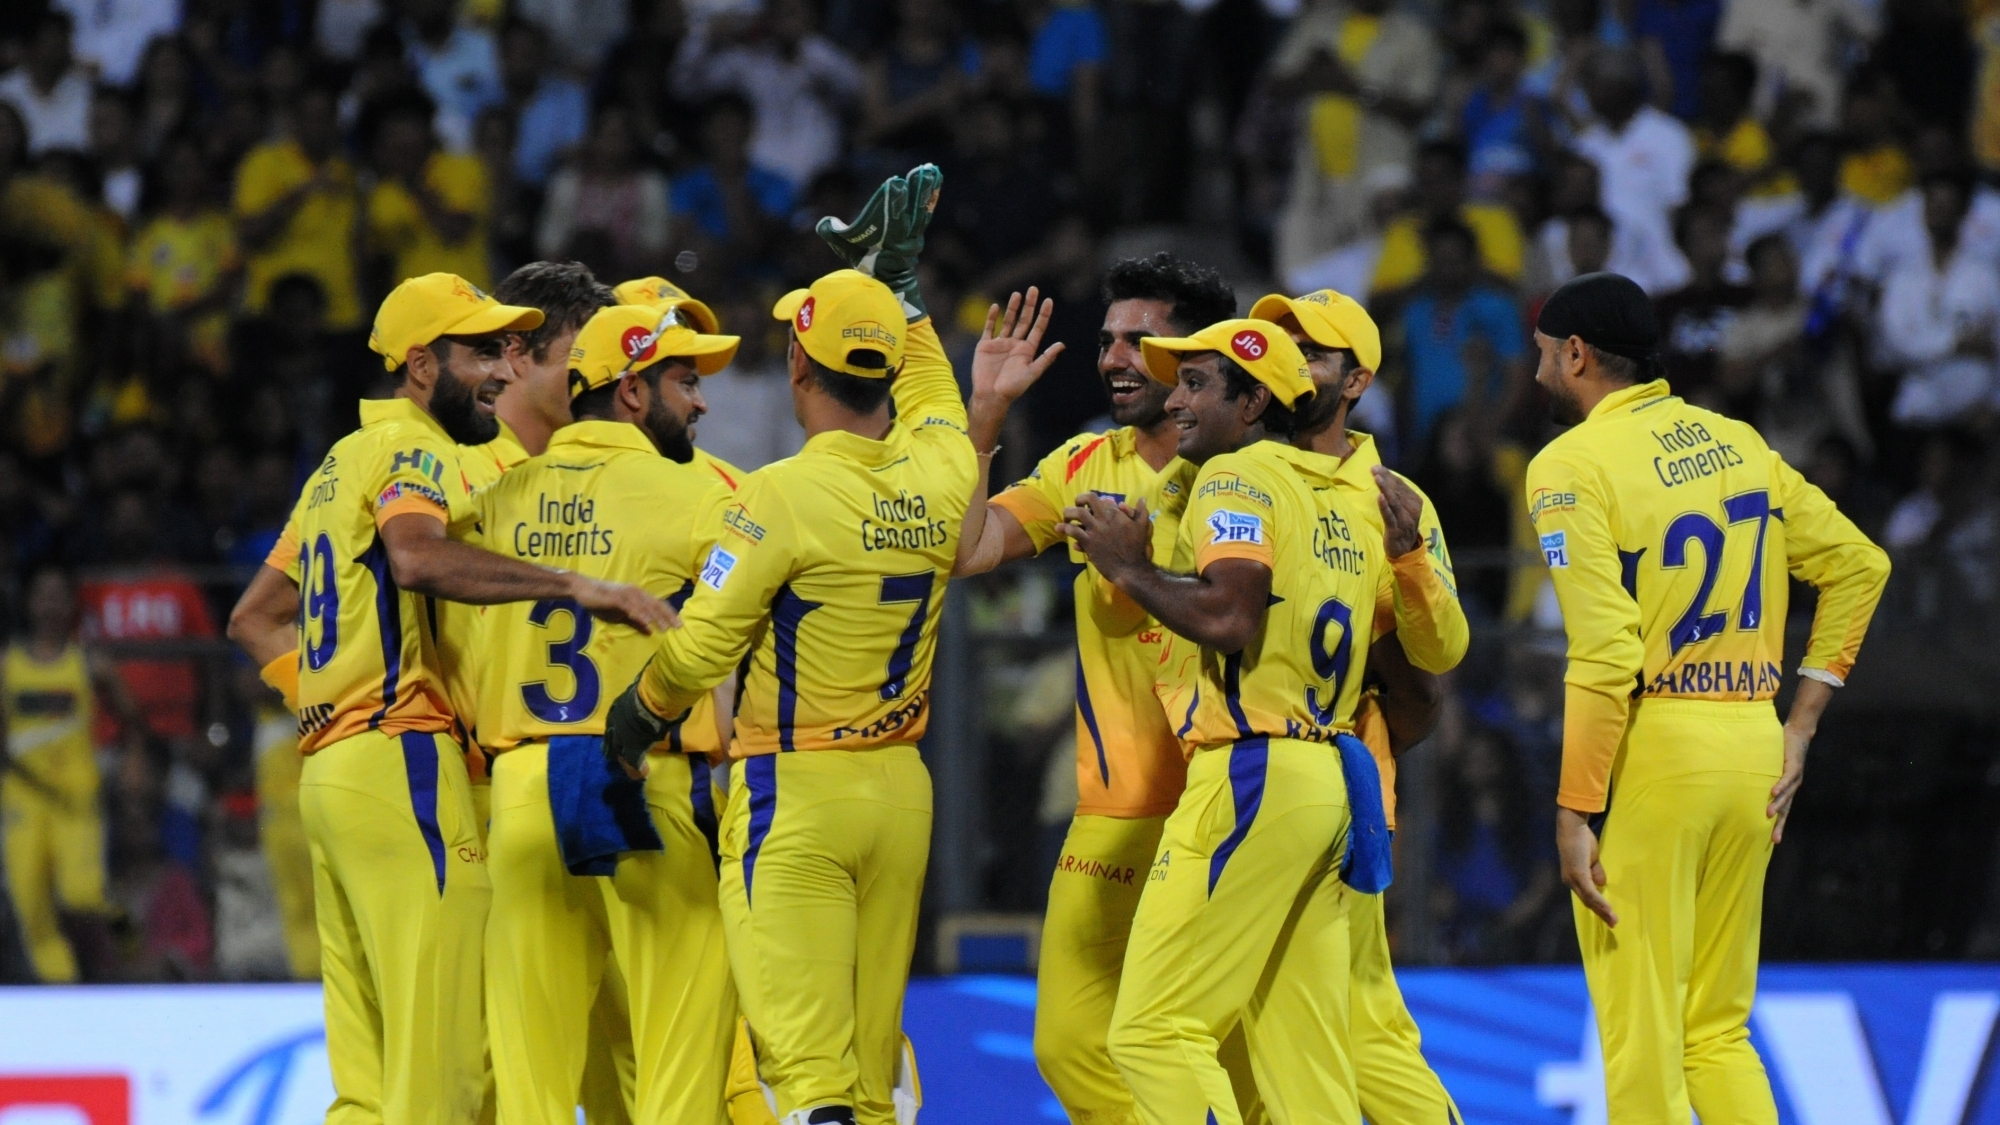 IPL 2018 Match 1- MI vs CSK : Five talking points from the game